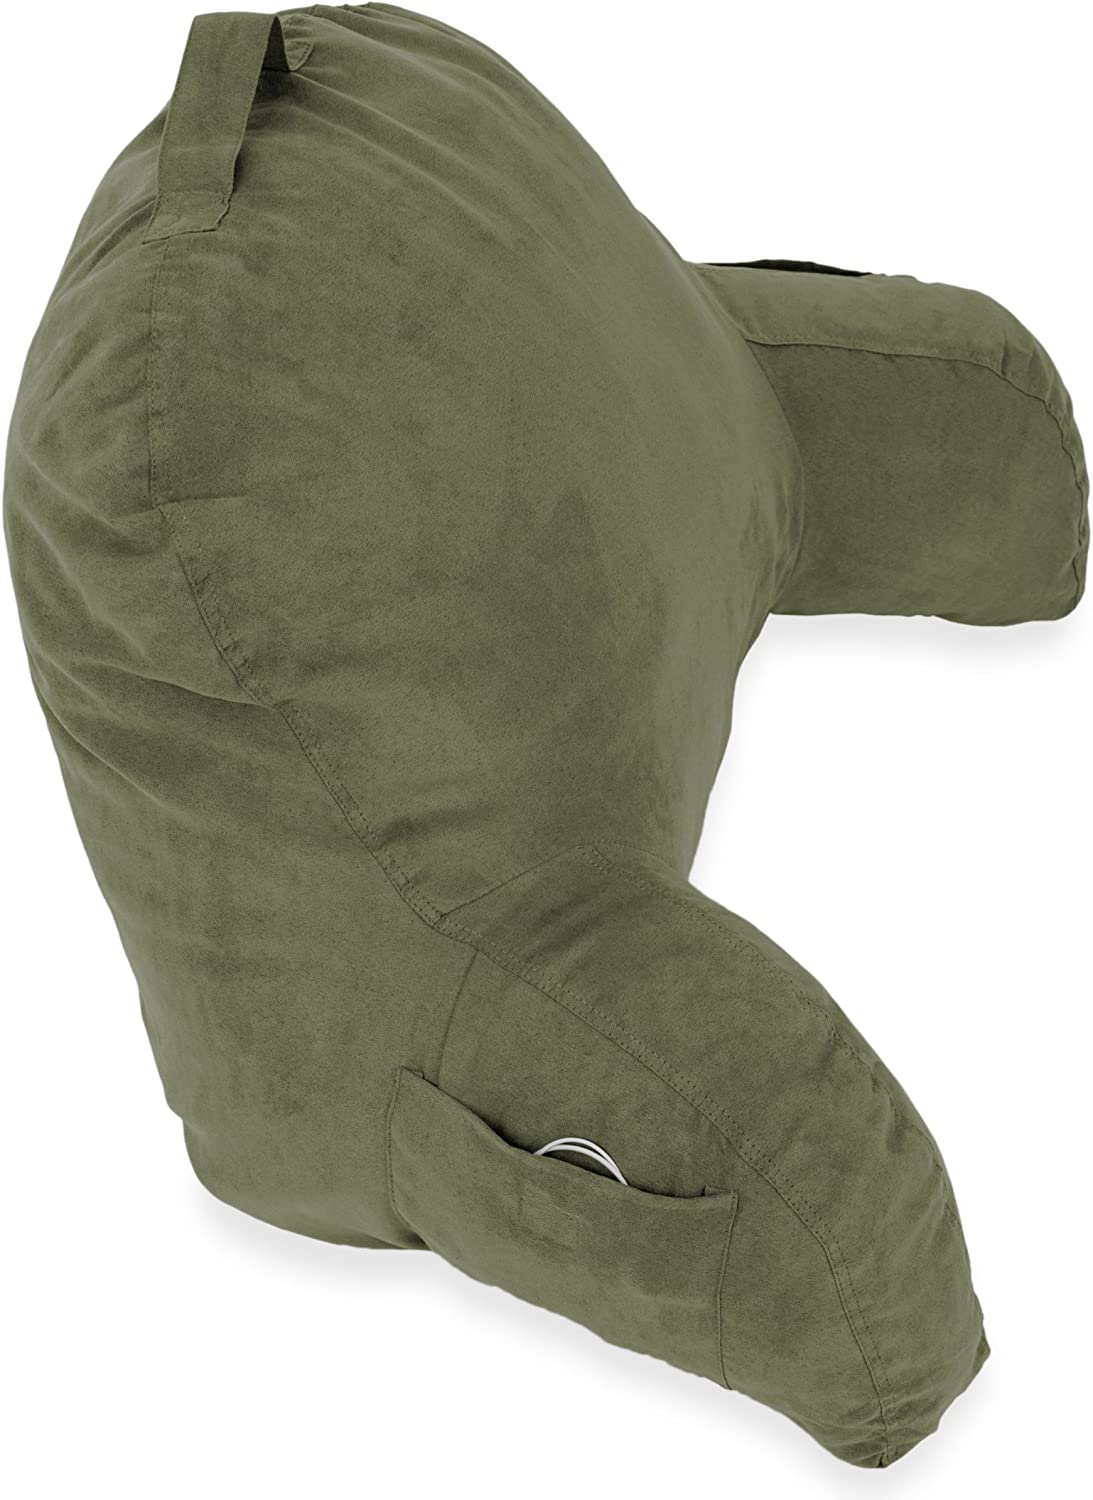 Bedrest Pillow Bed Pillow For Sitting Up Bed Rest Lounger Makes A Comfy And Therapeutic Cuddle Buddy Black Microsuede Bed Rest Reading Pillow /& Support Bed Backrest Pillow With Arms